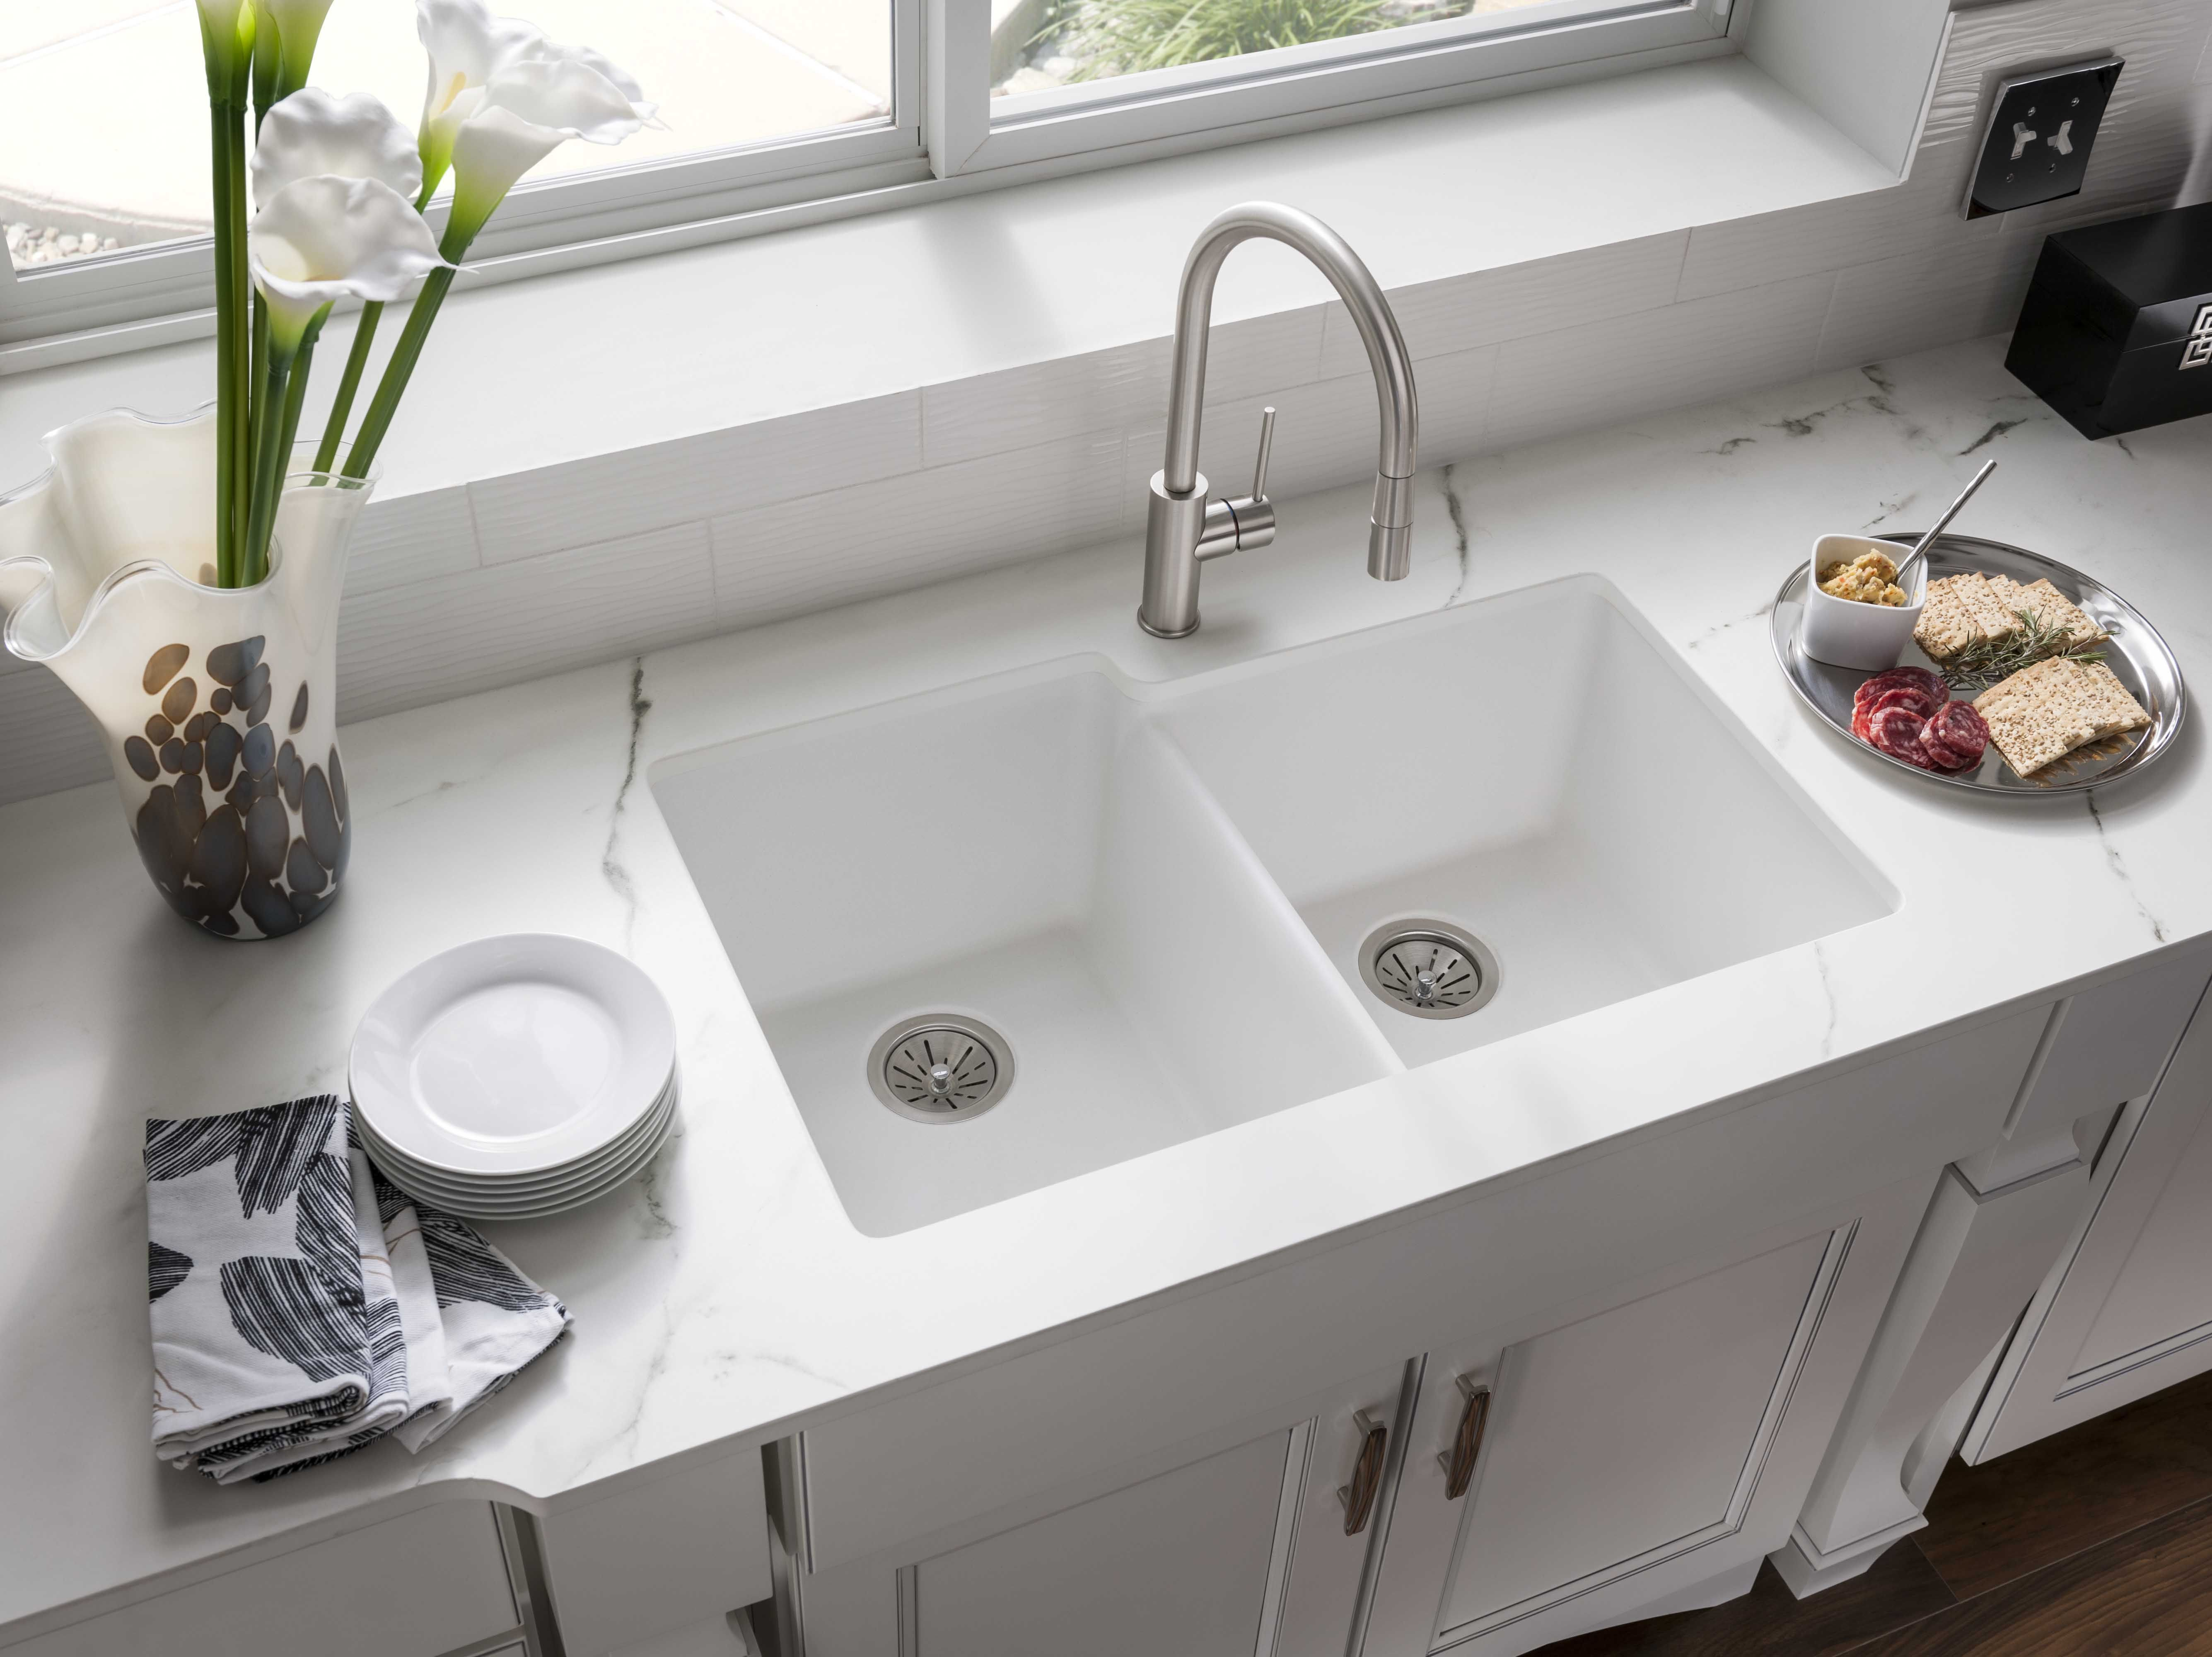 Elkay Quartz Classic Kitchen Sinks Have A Smooth Surface And A